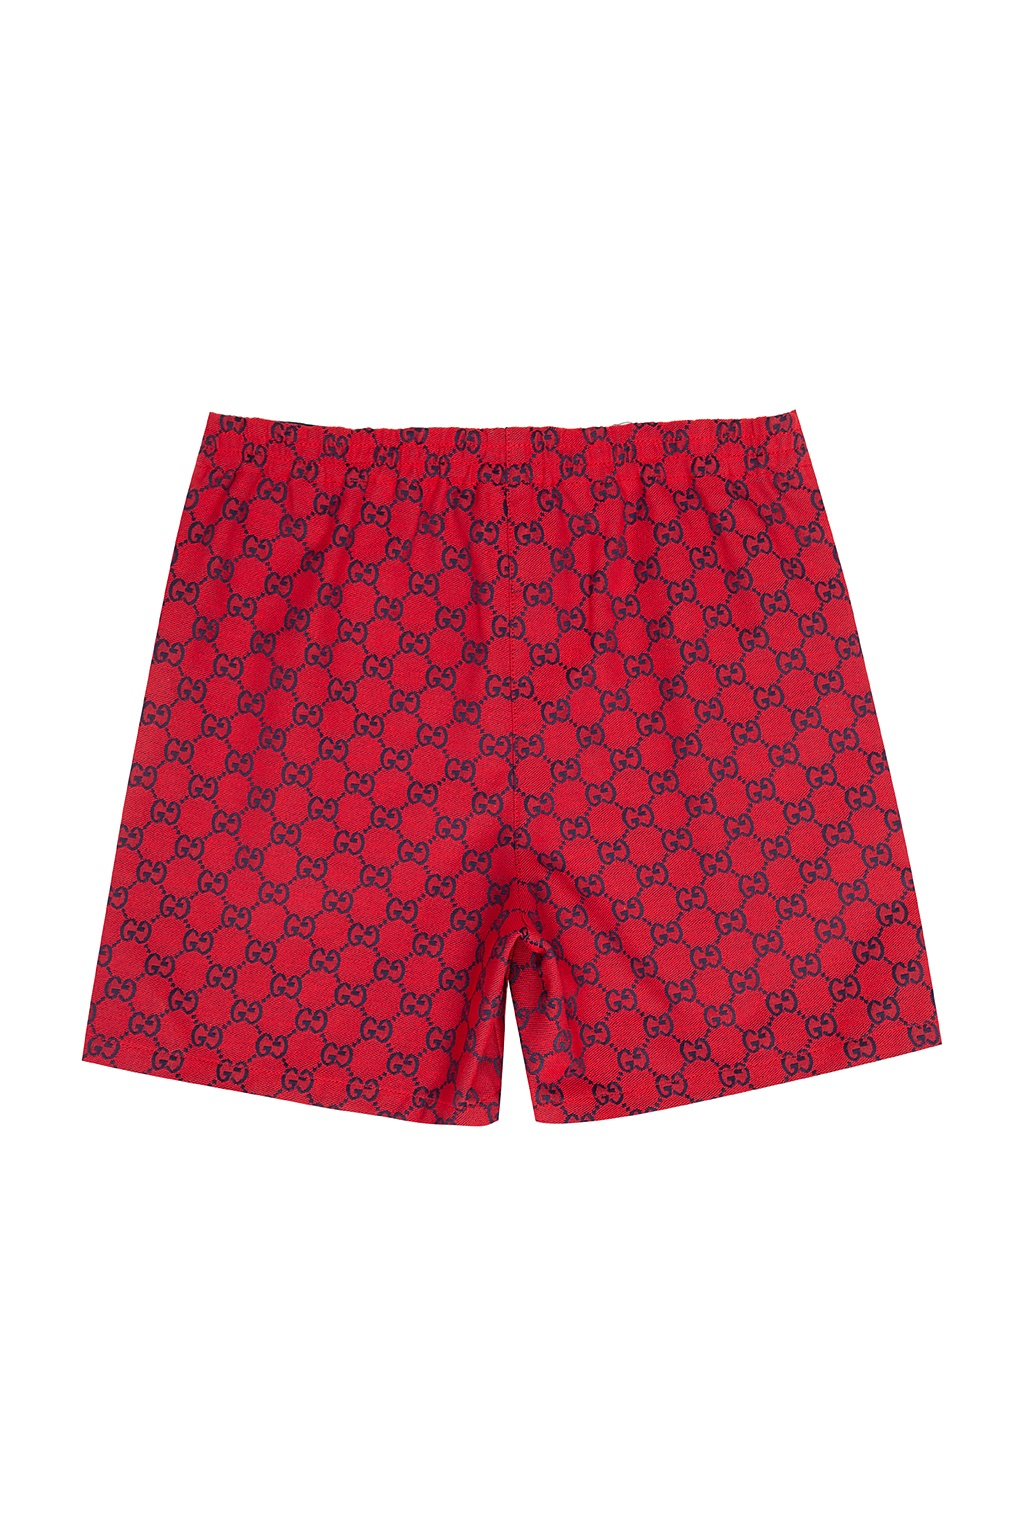 Gucci Kids Shorts with logo